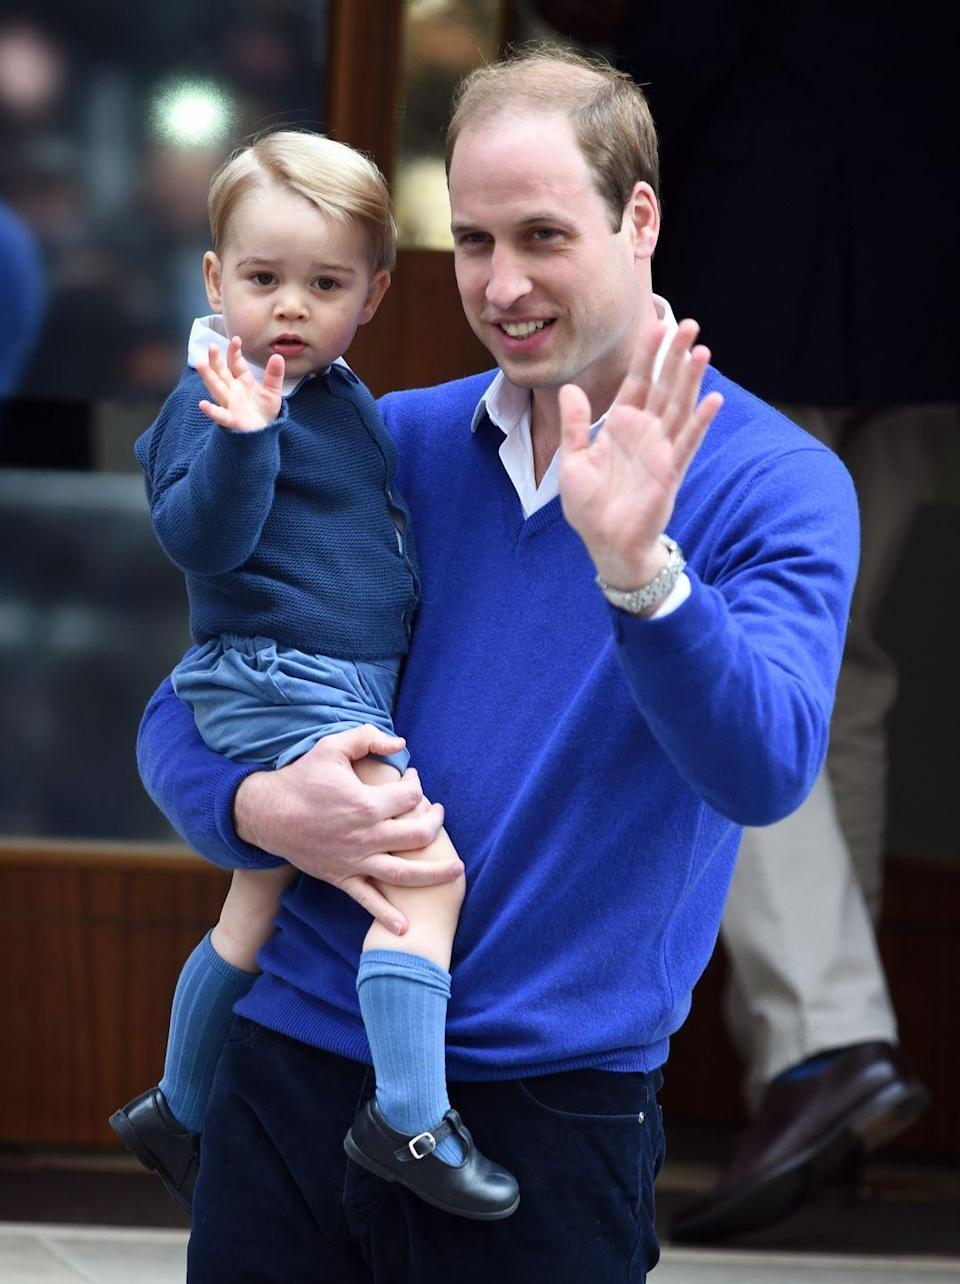 <p>Smile and wave! Not only was Prince George emulating his father's style when greeting crowds after Kate Middleton gave birth to Princess Charlotte, he also waved along—however skeptical he may seem.</p>